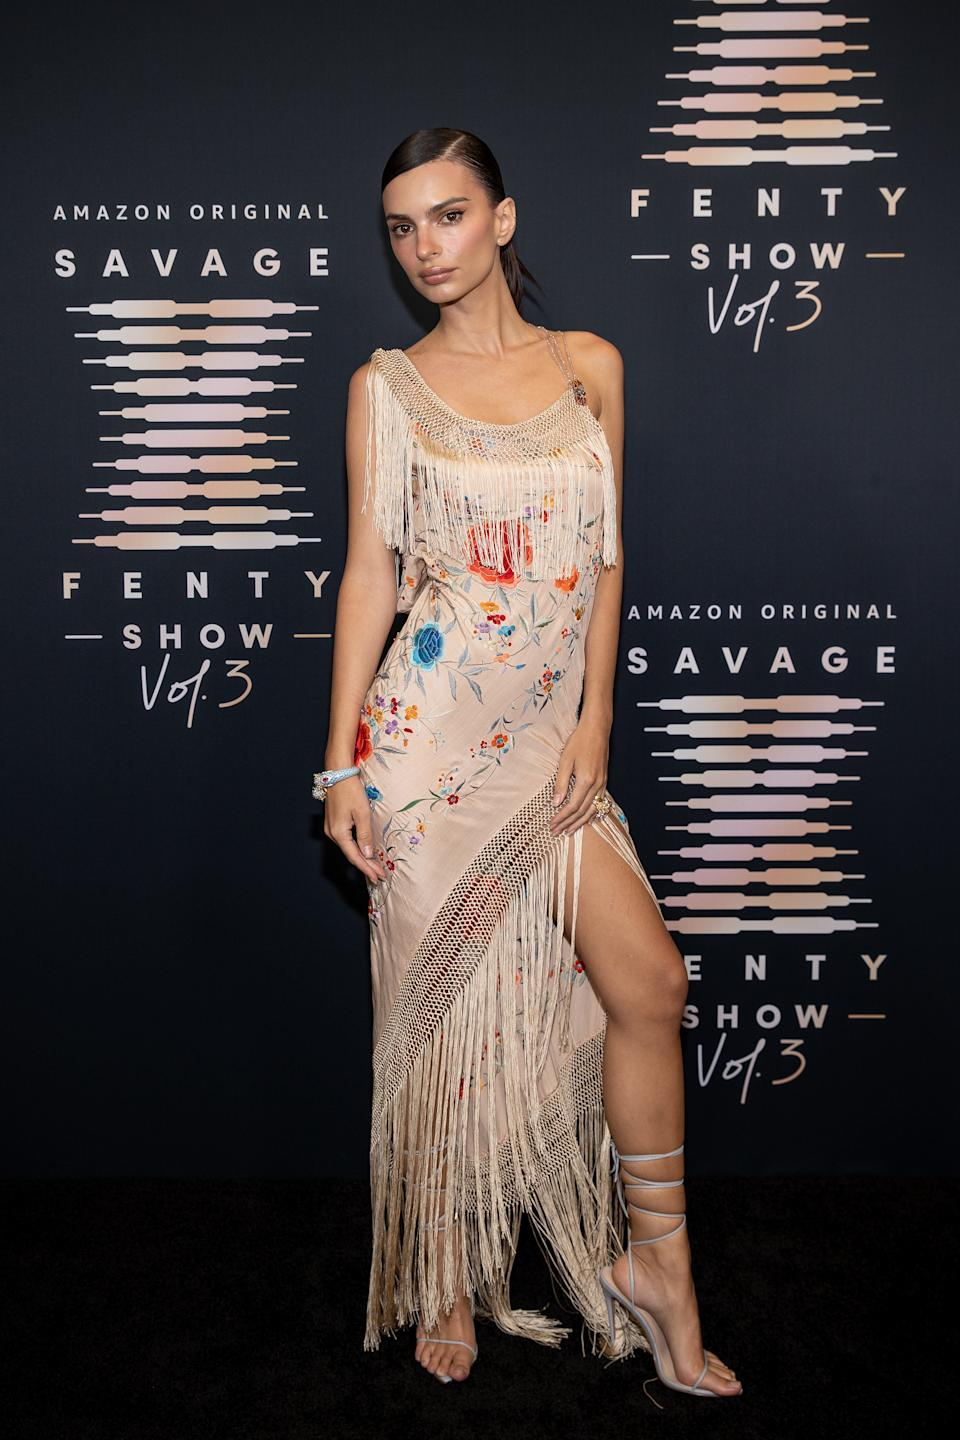 LOS ANGELES, CALIFORNIA - SEPTEMBER 22: In this image released on September 22, Emily Ratajkowski attends Rihanna's Savage X Fenty Show Vol. 3 presented by Amazon Prime Video at The Westin Bonaventure Hotel & Suites in Los Angeles, California; and broadcast on September 24, 2021. (Photo by Emma McIntyre/Getty Images for Rihanna's Savage X Fenty Show Vol. 3 Presented by Amazon Prime Video)